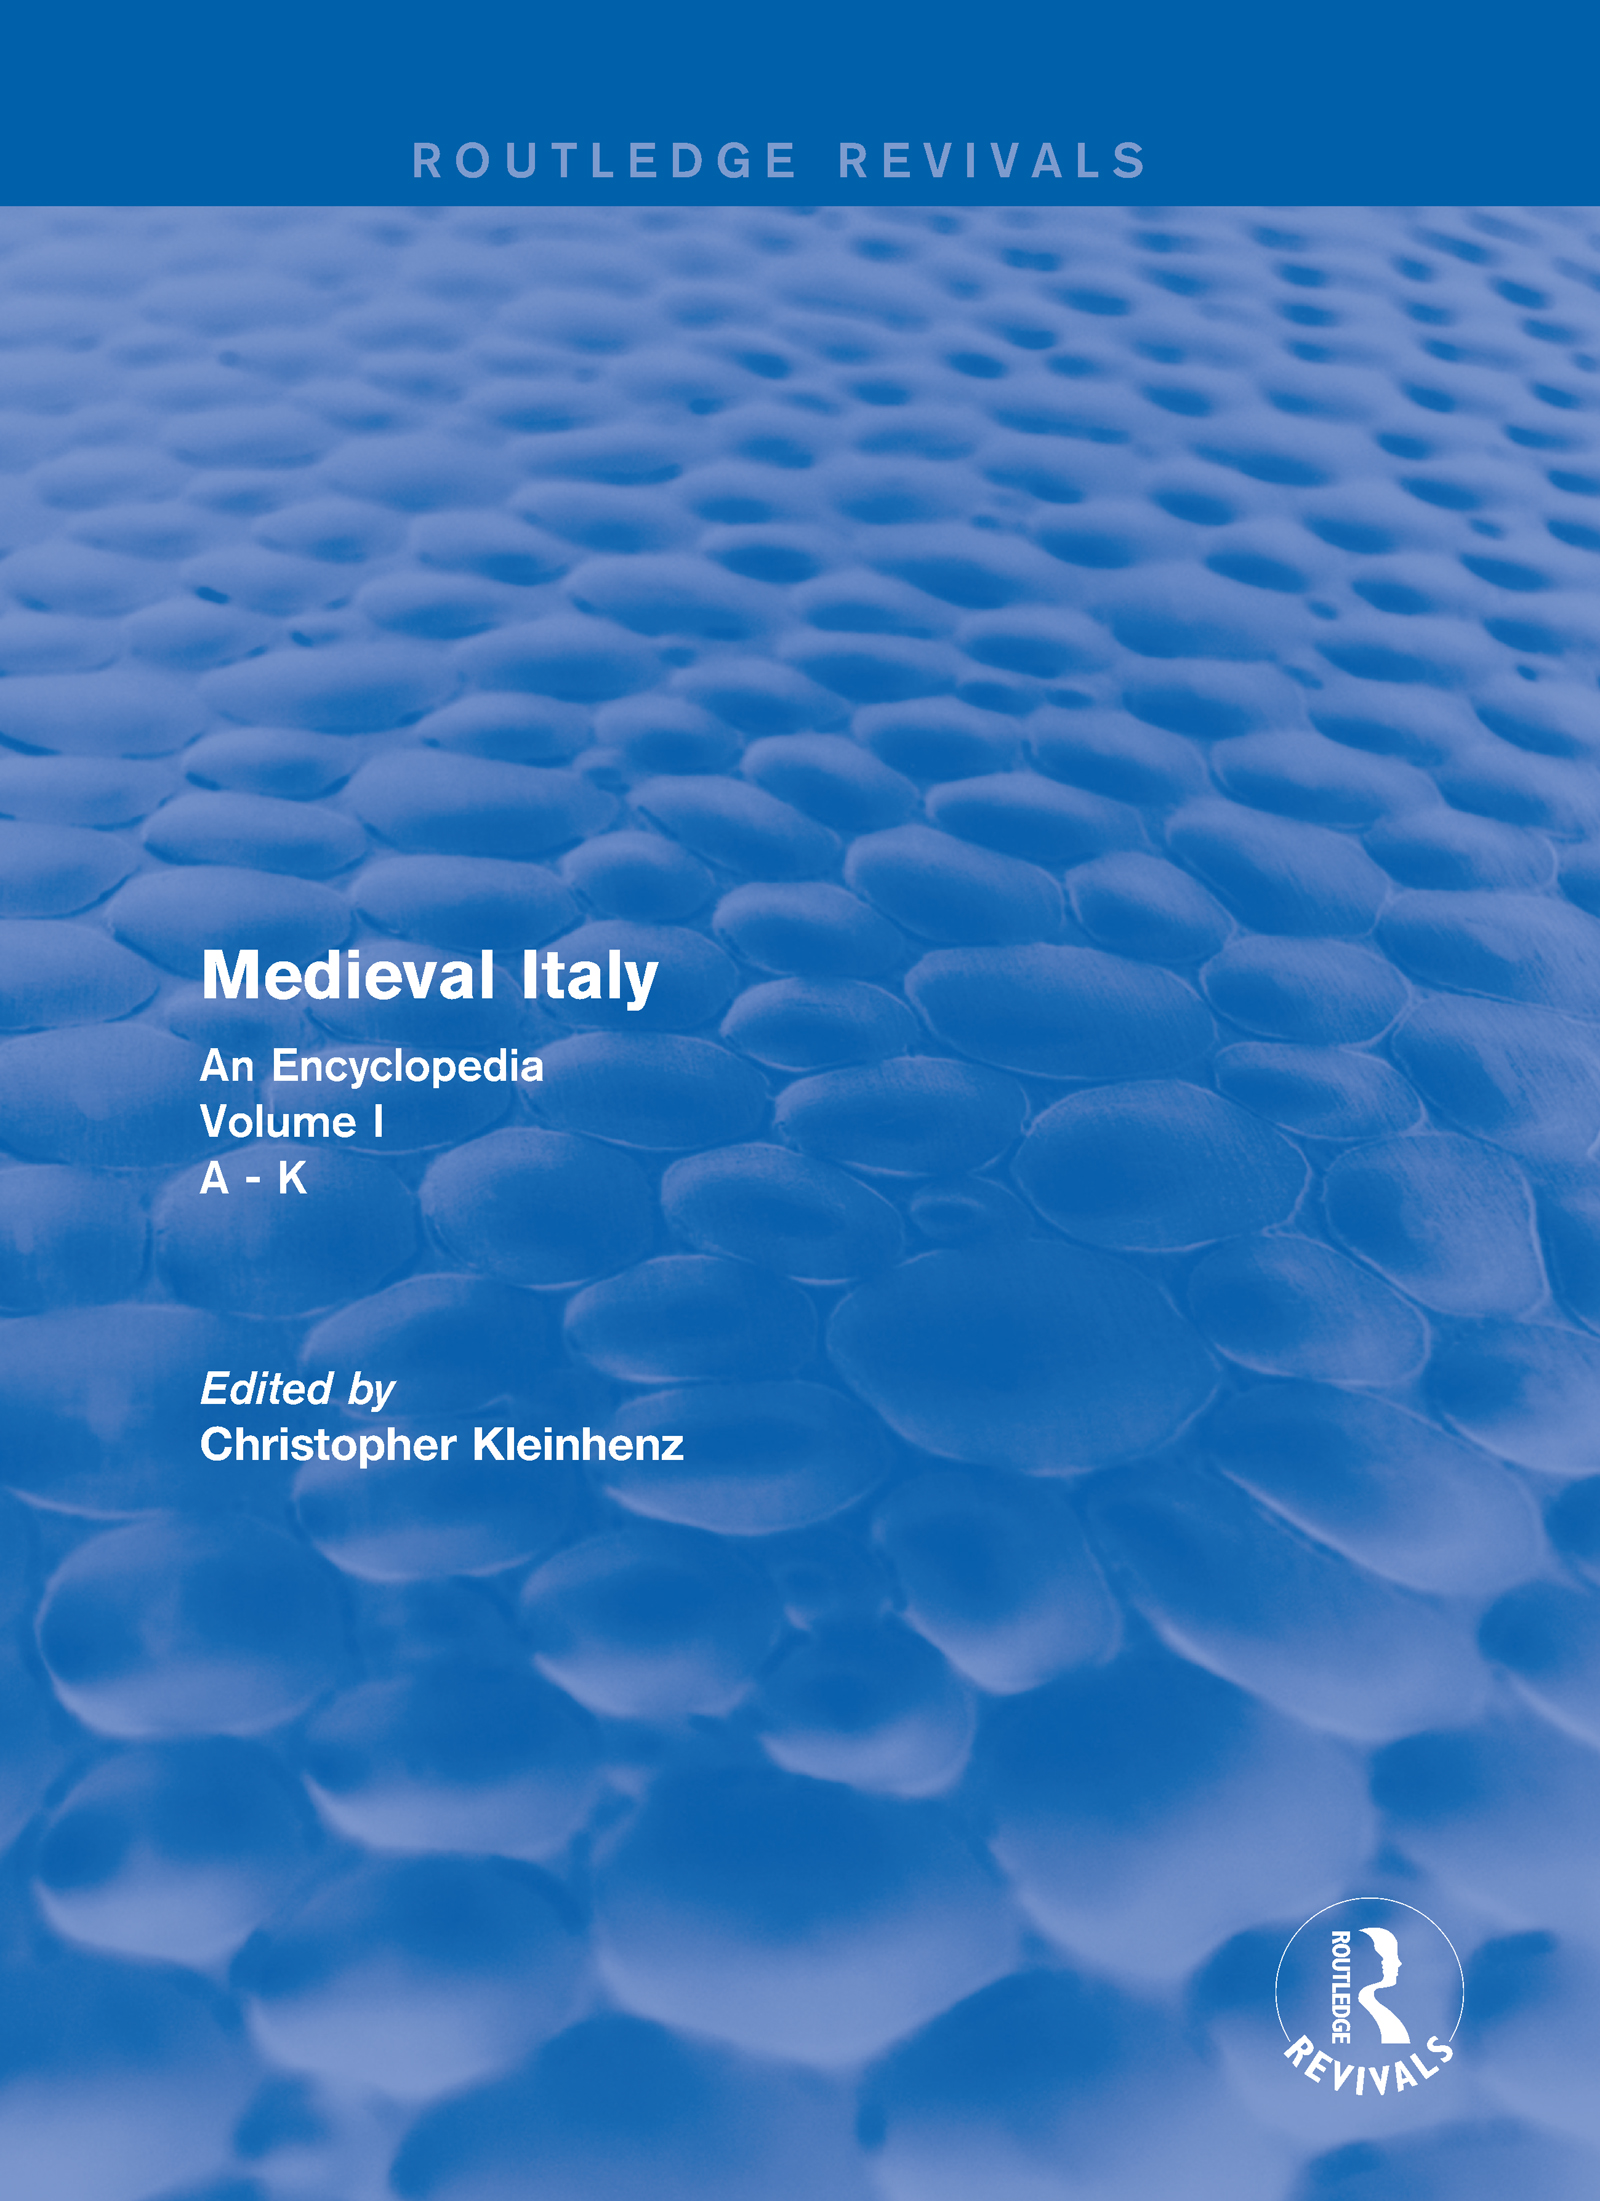 Routledge Revivals: Medieval Italy (2004): An Encyclopedia - Volume I book cover